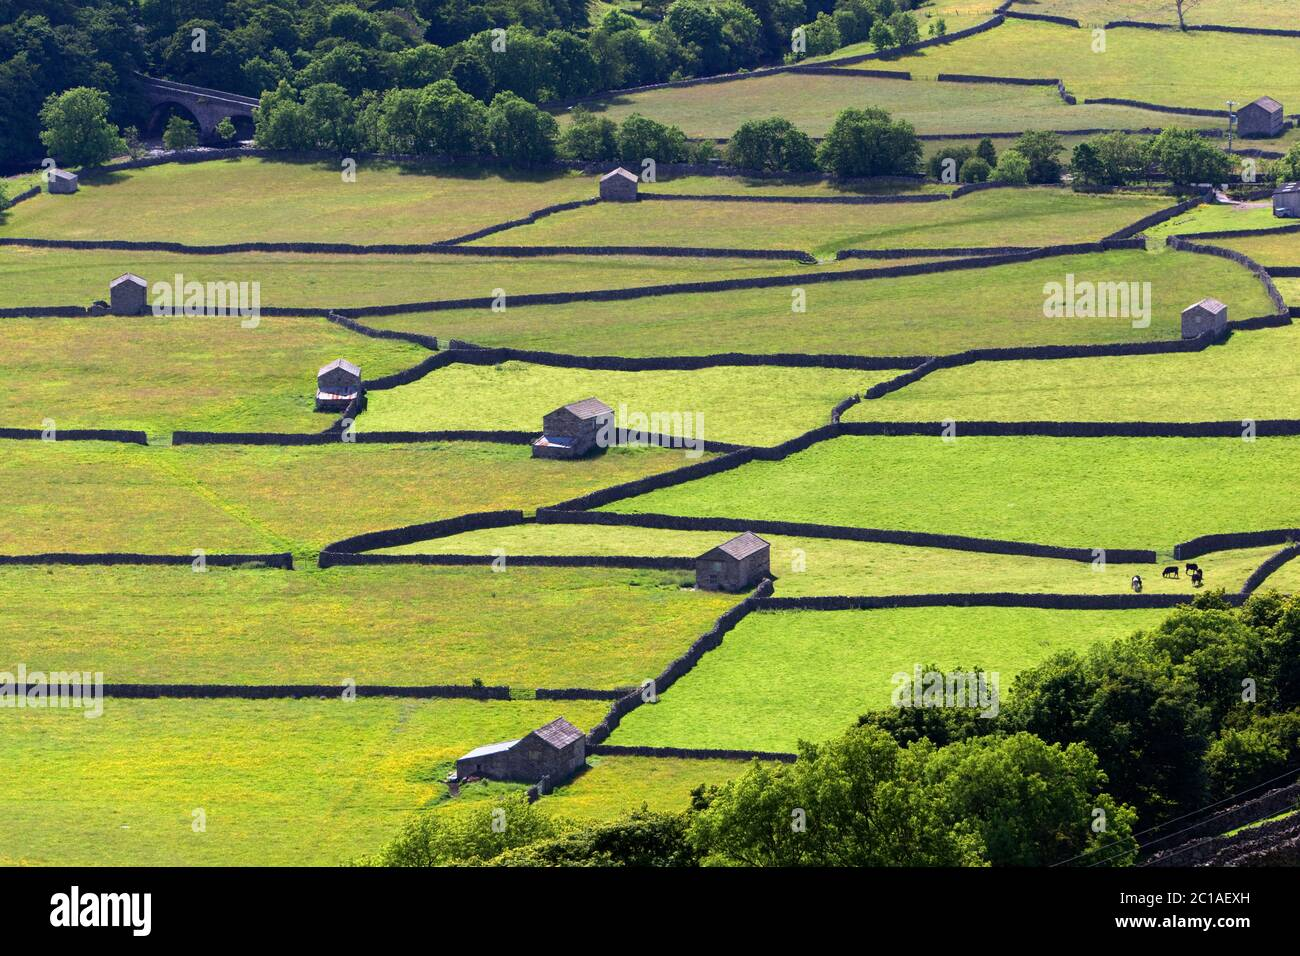 Dry stone walls and barns in Swaledale, Gunnerside, Yorkshire Dales National Park, North Yorkshire, England, United Kingdom, Europe Stock Photo